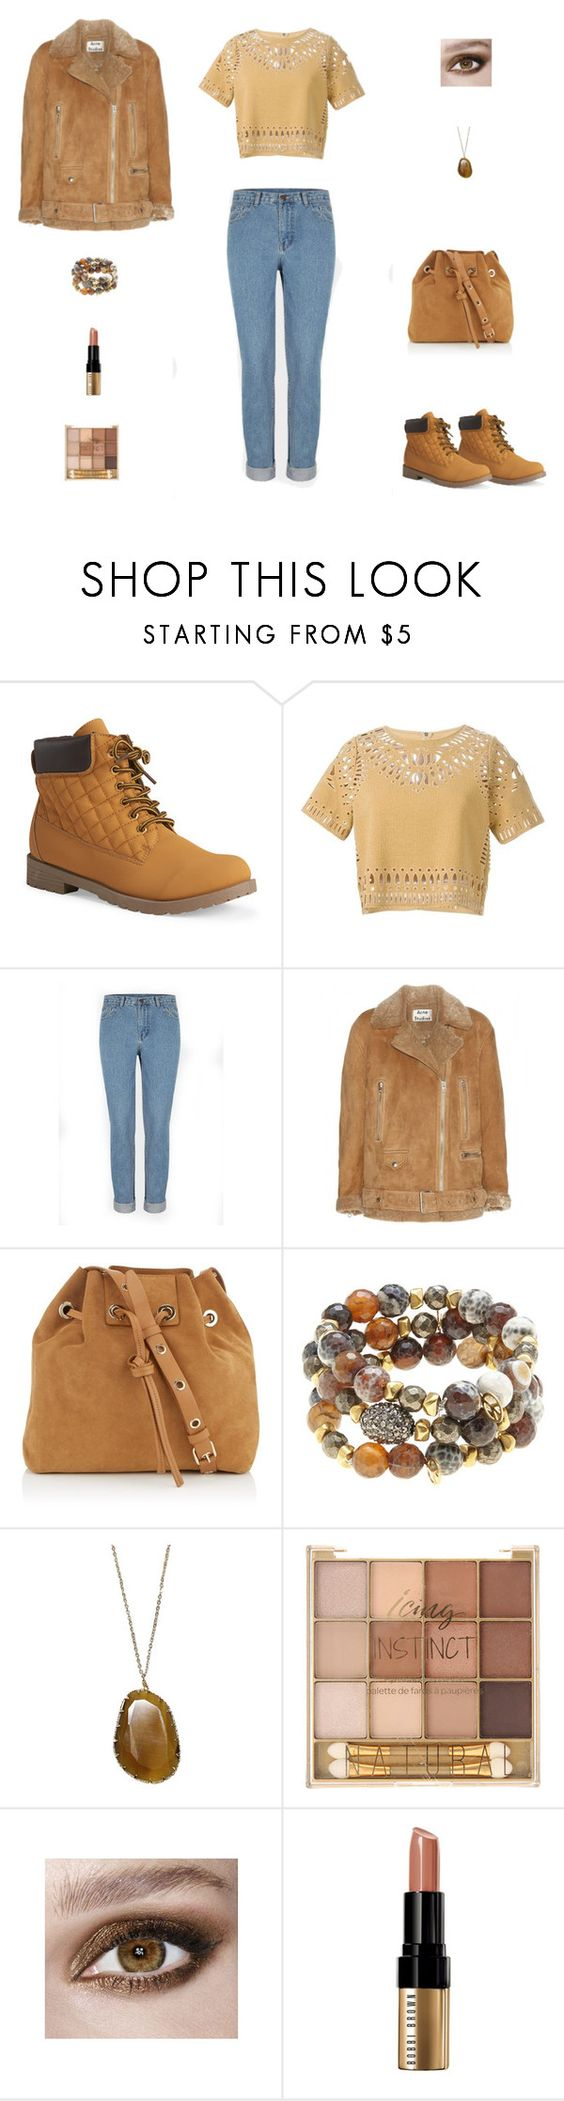 """Contest: Caramel Suede Outfit"" by billsacred ❤ liked on Polyvore featuring Mode, Aéropostale, Sea, New York, Acne Studios, Vanessa Bruno, Hipchik und Bobbi Brown Cosmetics"